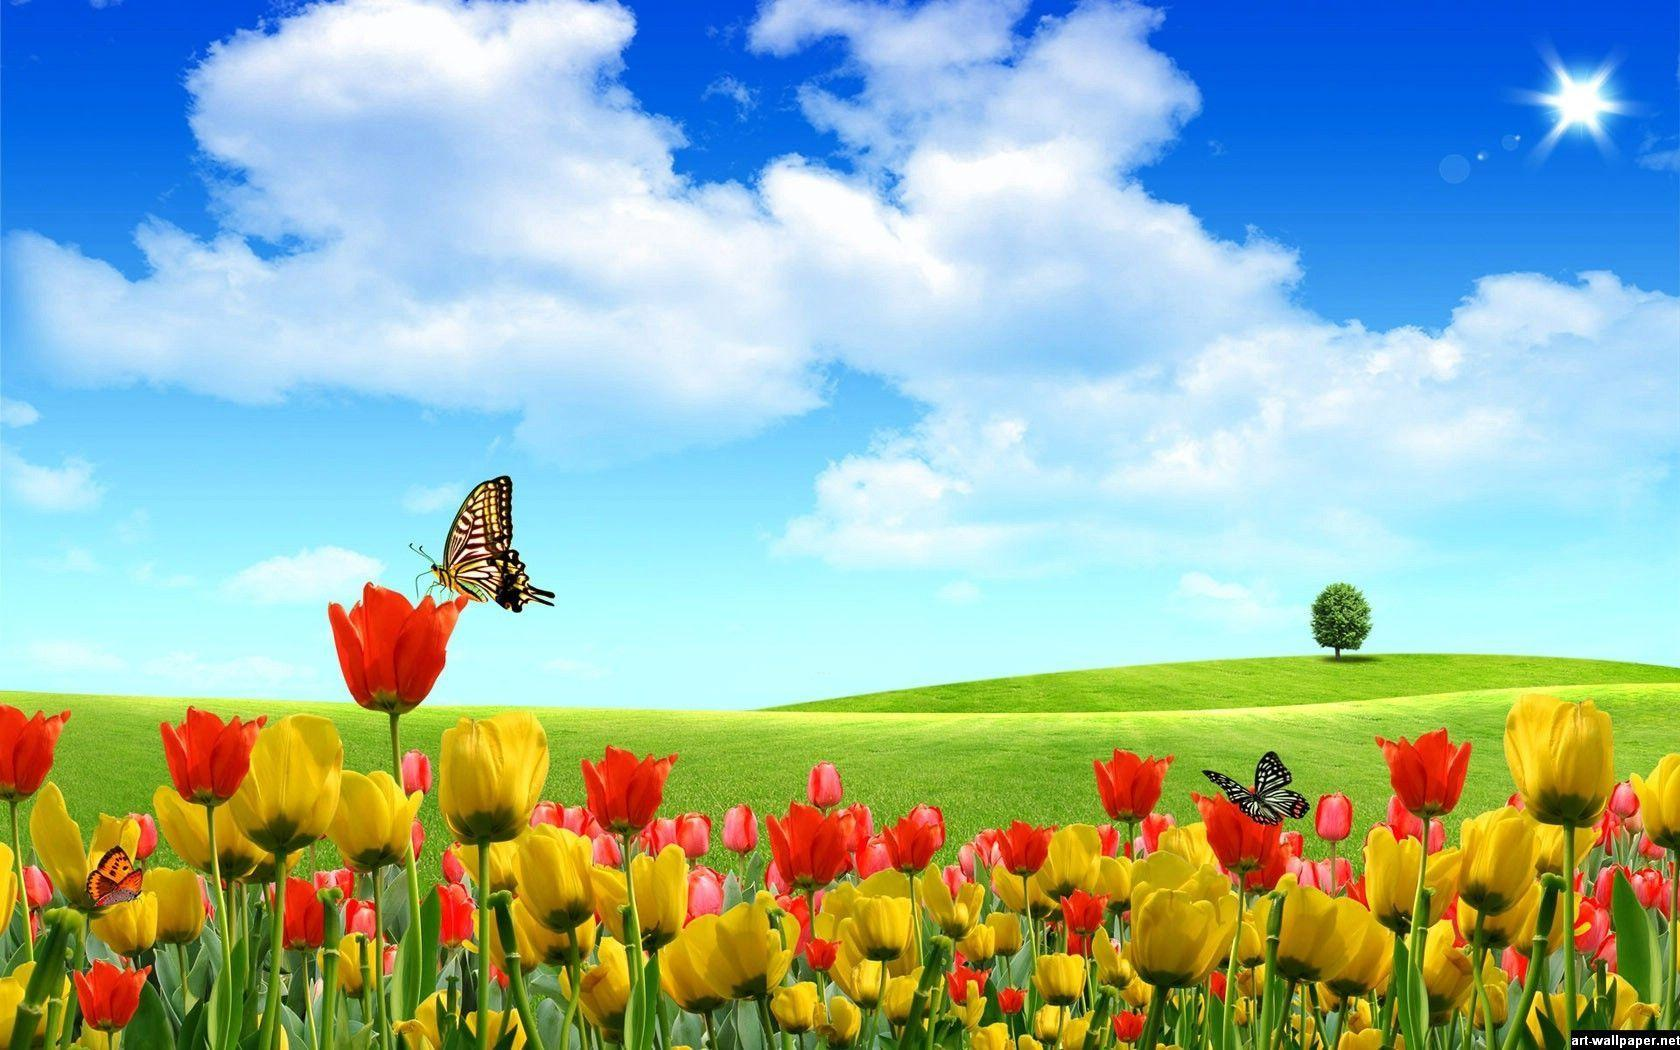 Full Hd Wallpapers 1080p Widescreen Nature Desktop Dwiky Shop Powered By Doodlekit